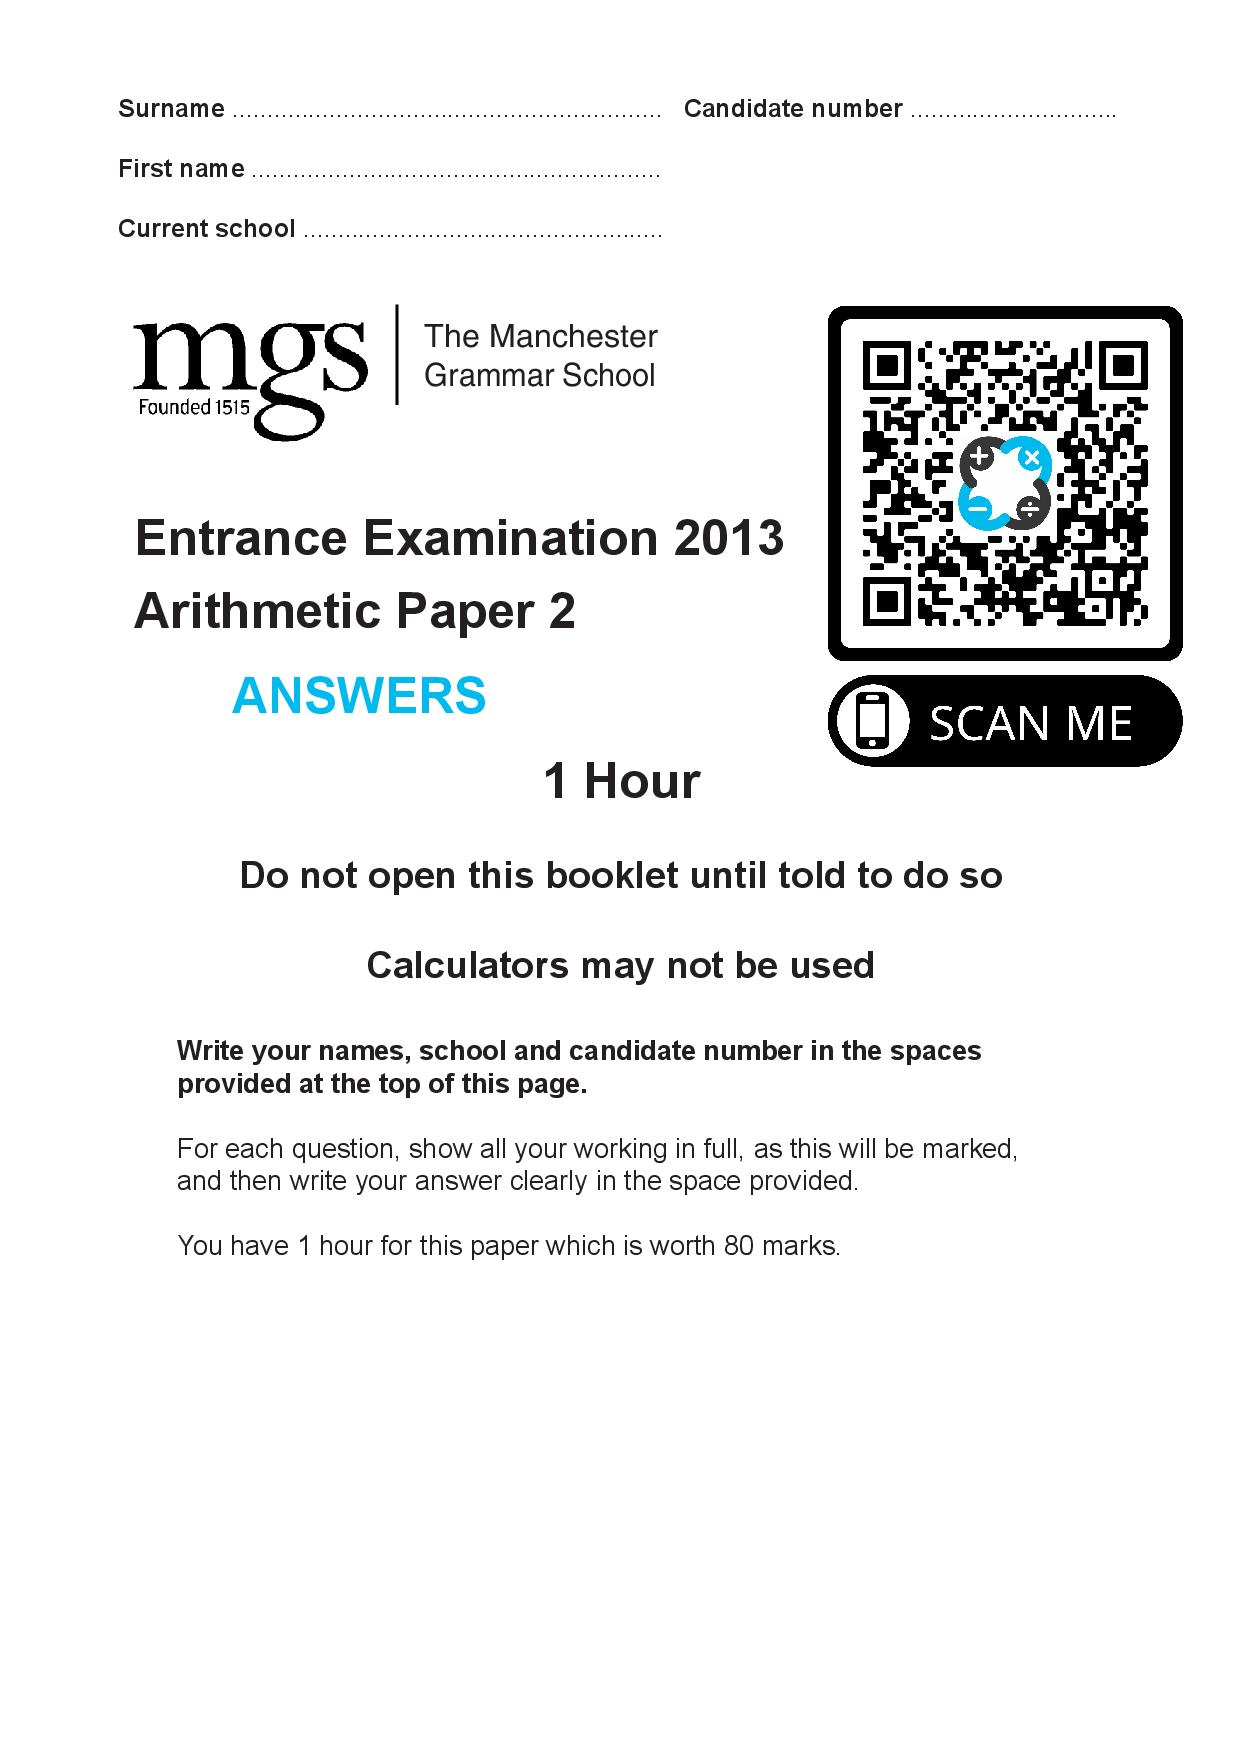 The Manchester Grammar School Entrance Examination 2013 Arithmetic Paper 2 Answer Paper page 001